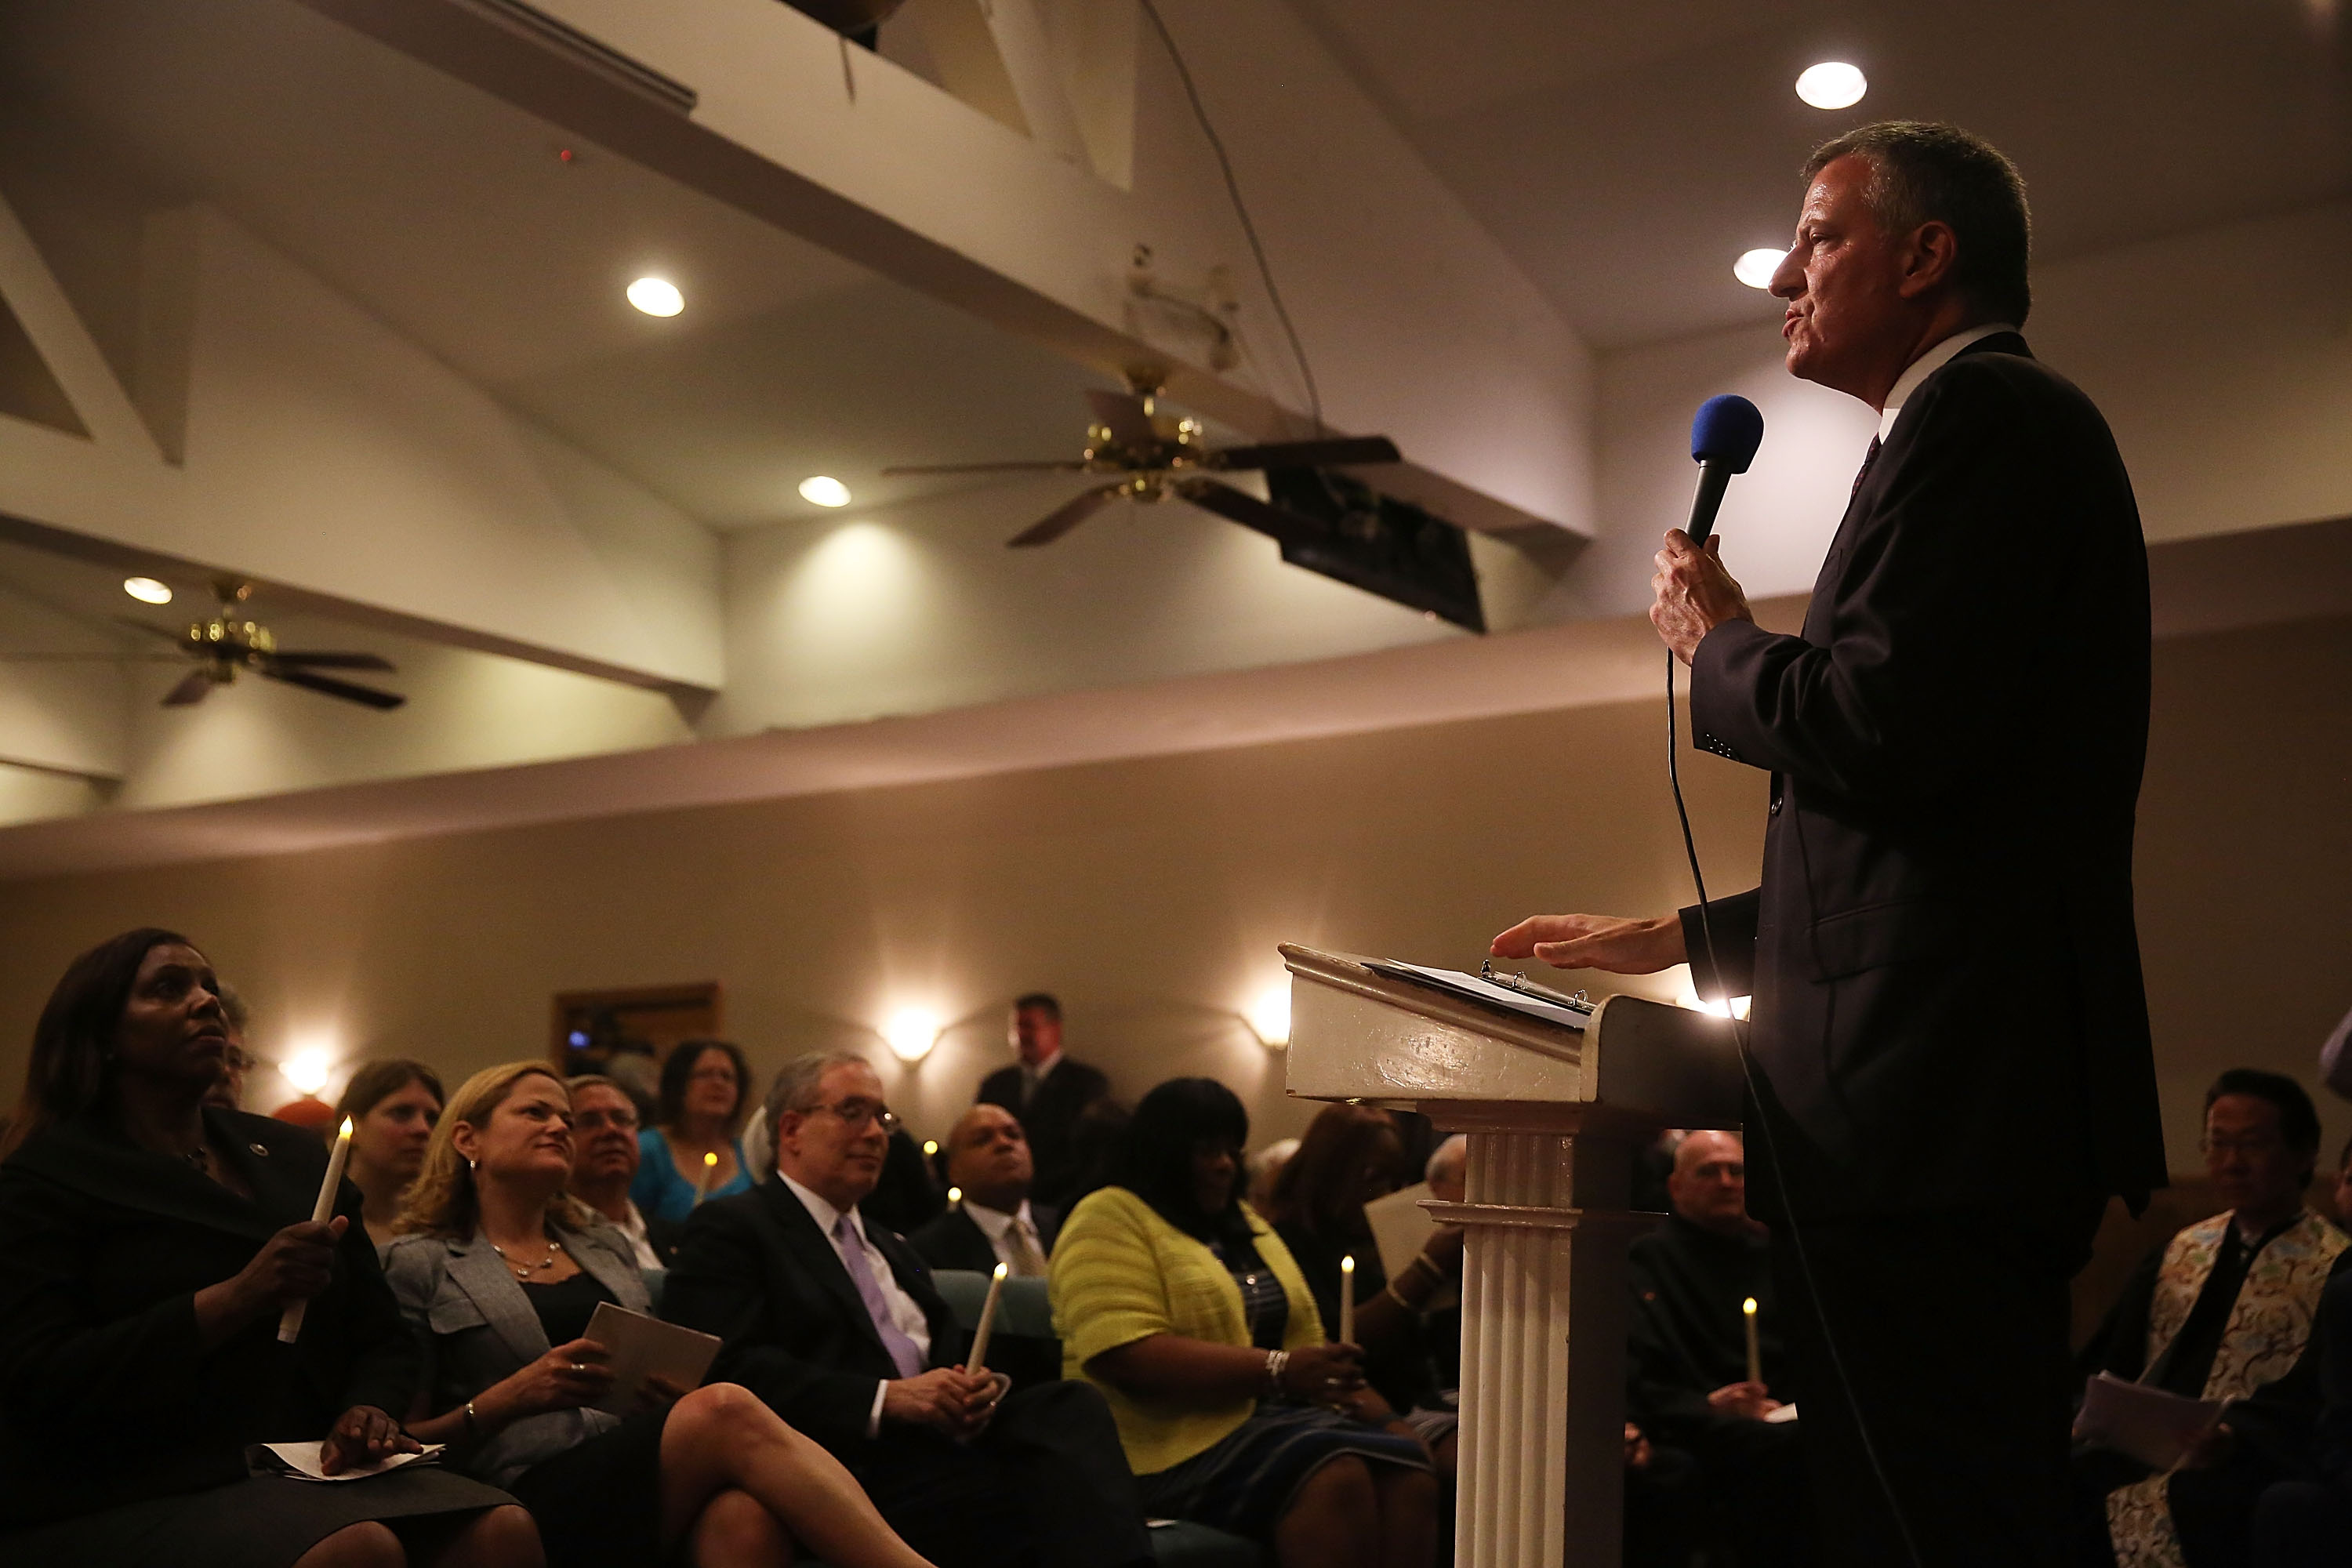 Mayor Bill de Blasio speaks at an interfaith prayer service at Mount Sinai United Christian Church to mark the one-year anniversary of the death of Eric Garner (Photo by Spencer Platt/Getty Images)